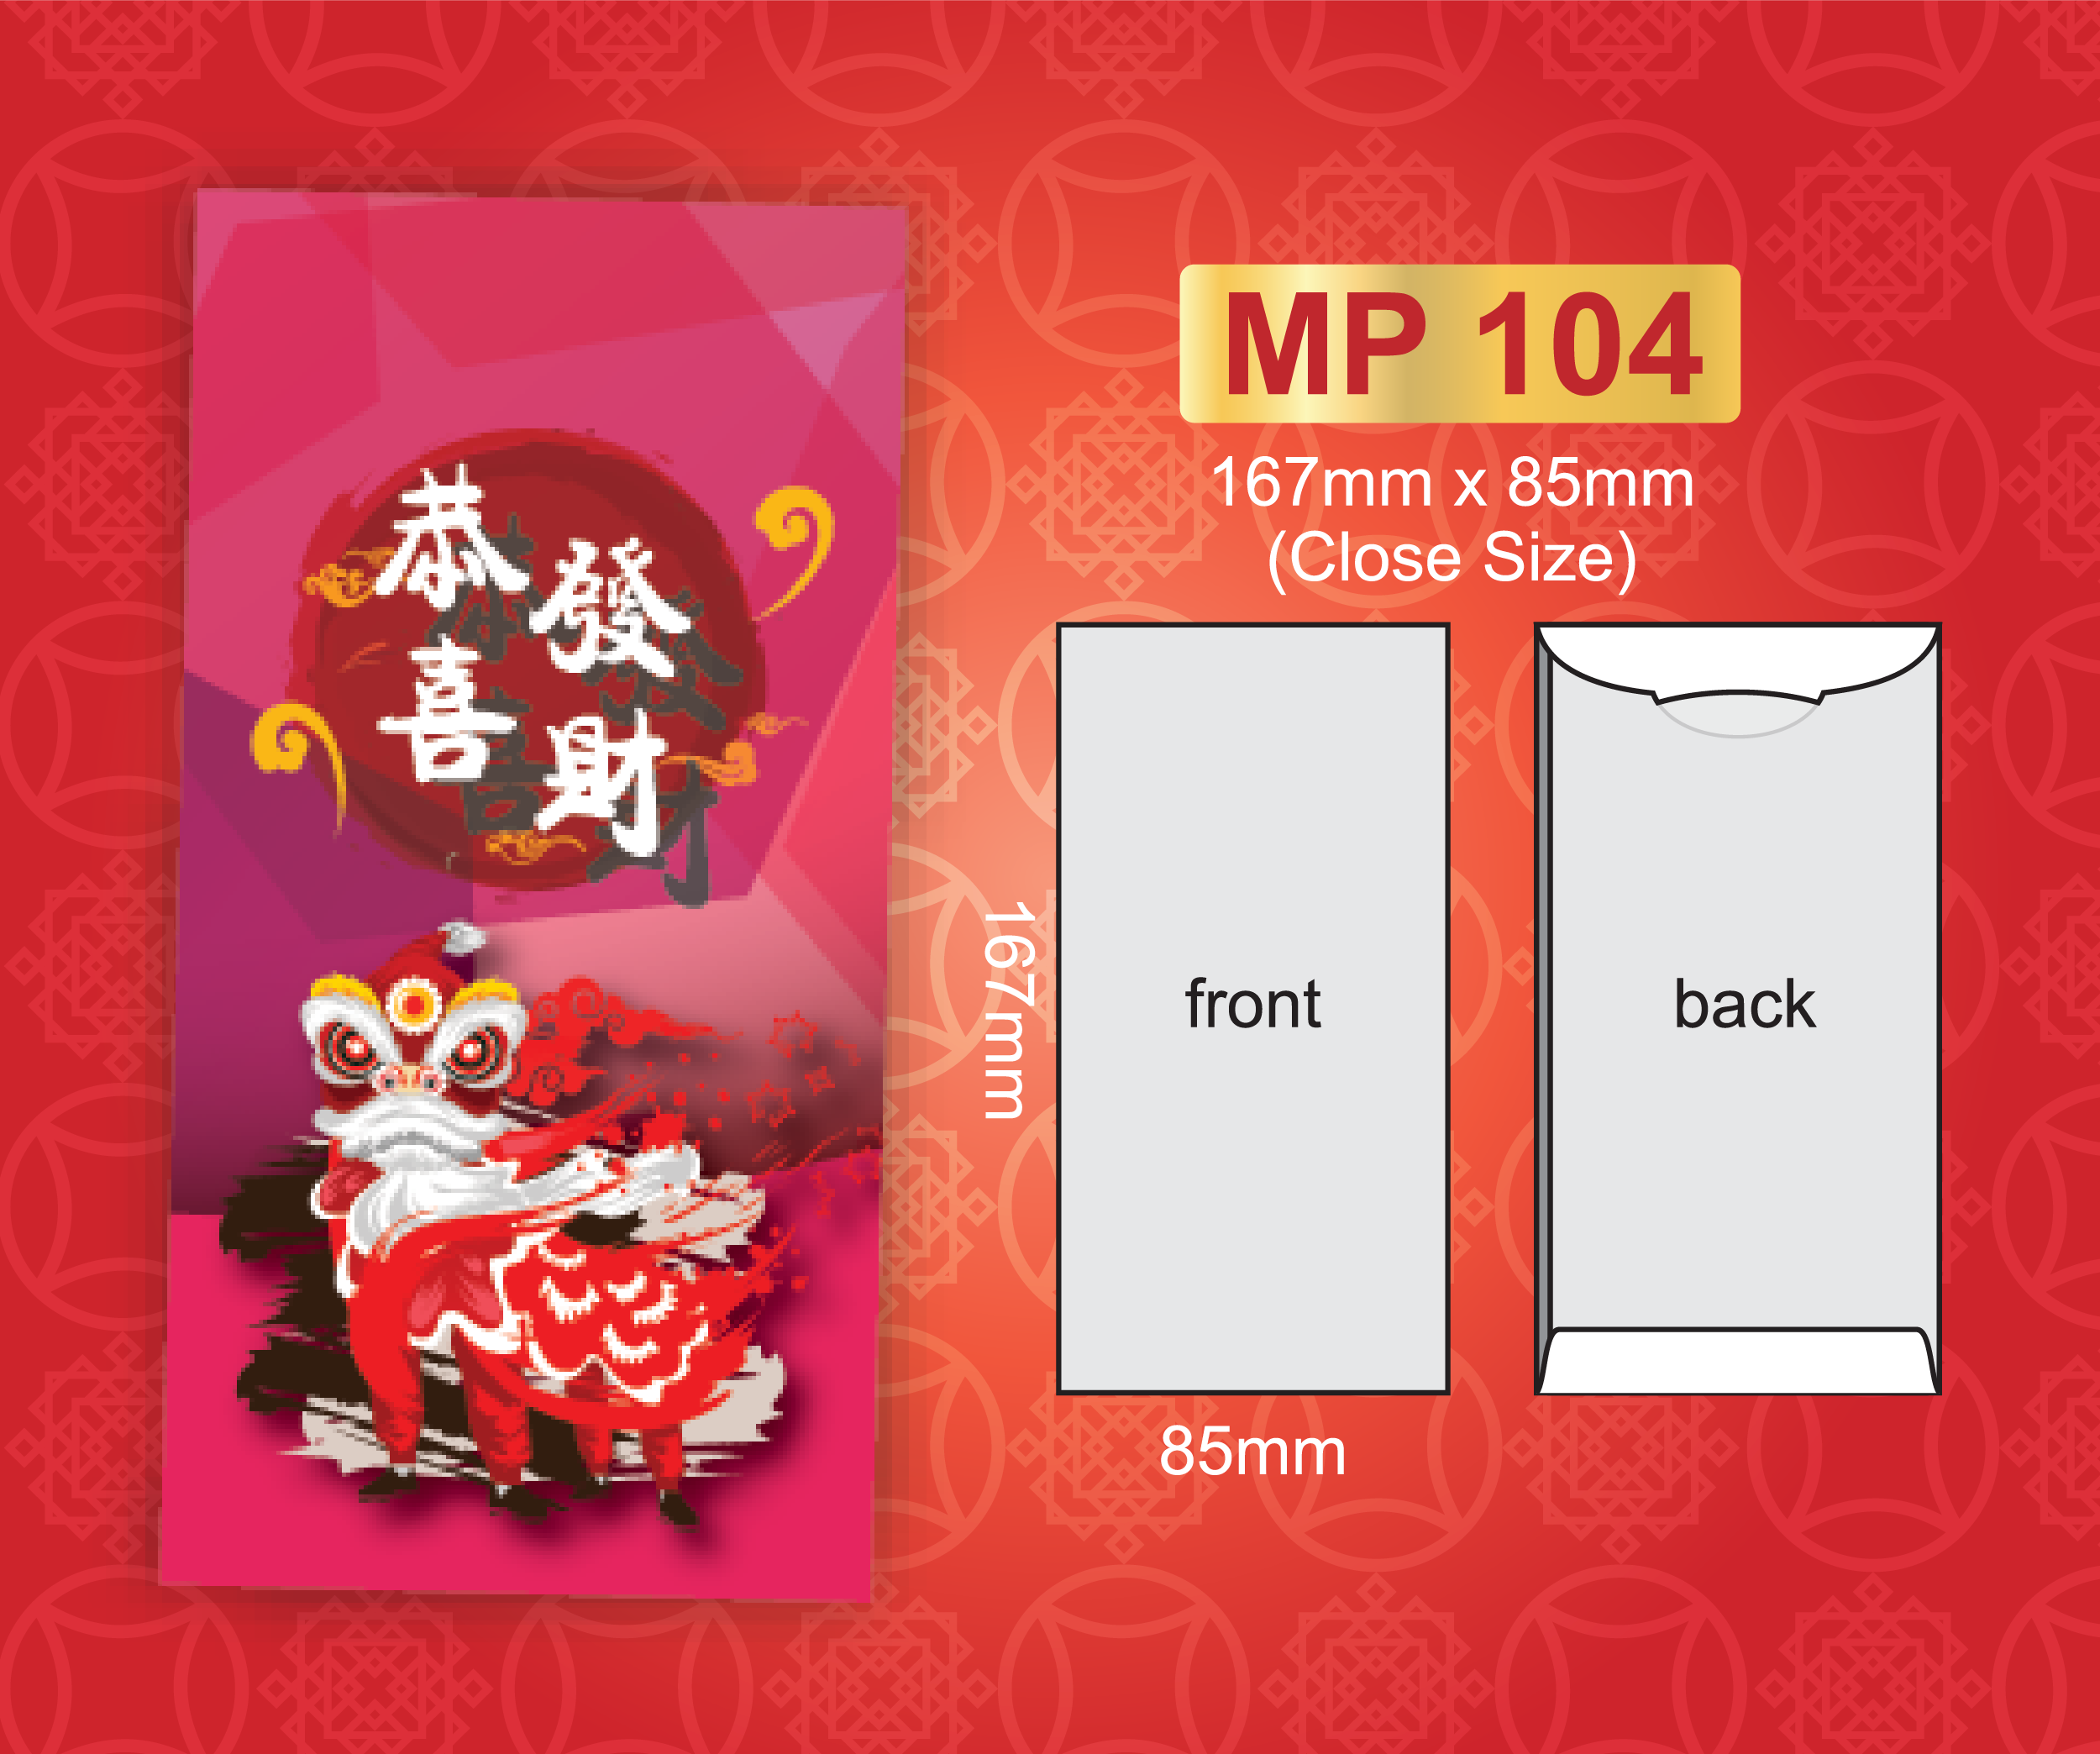 Custom Print Money Packet (130gsm Gloss Art Paper) Money Packet Guide Portrait MP104